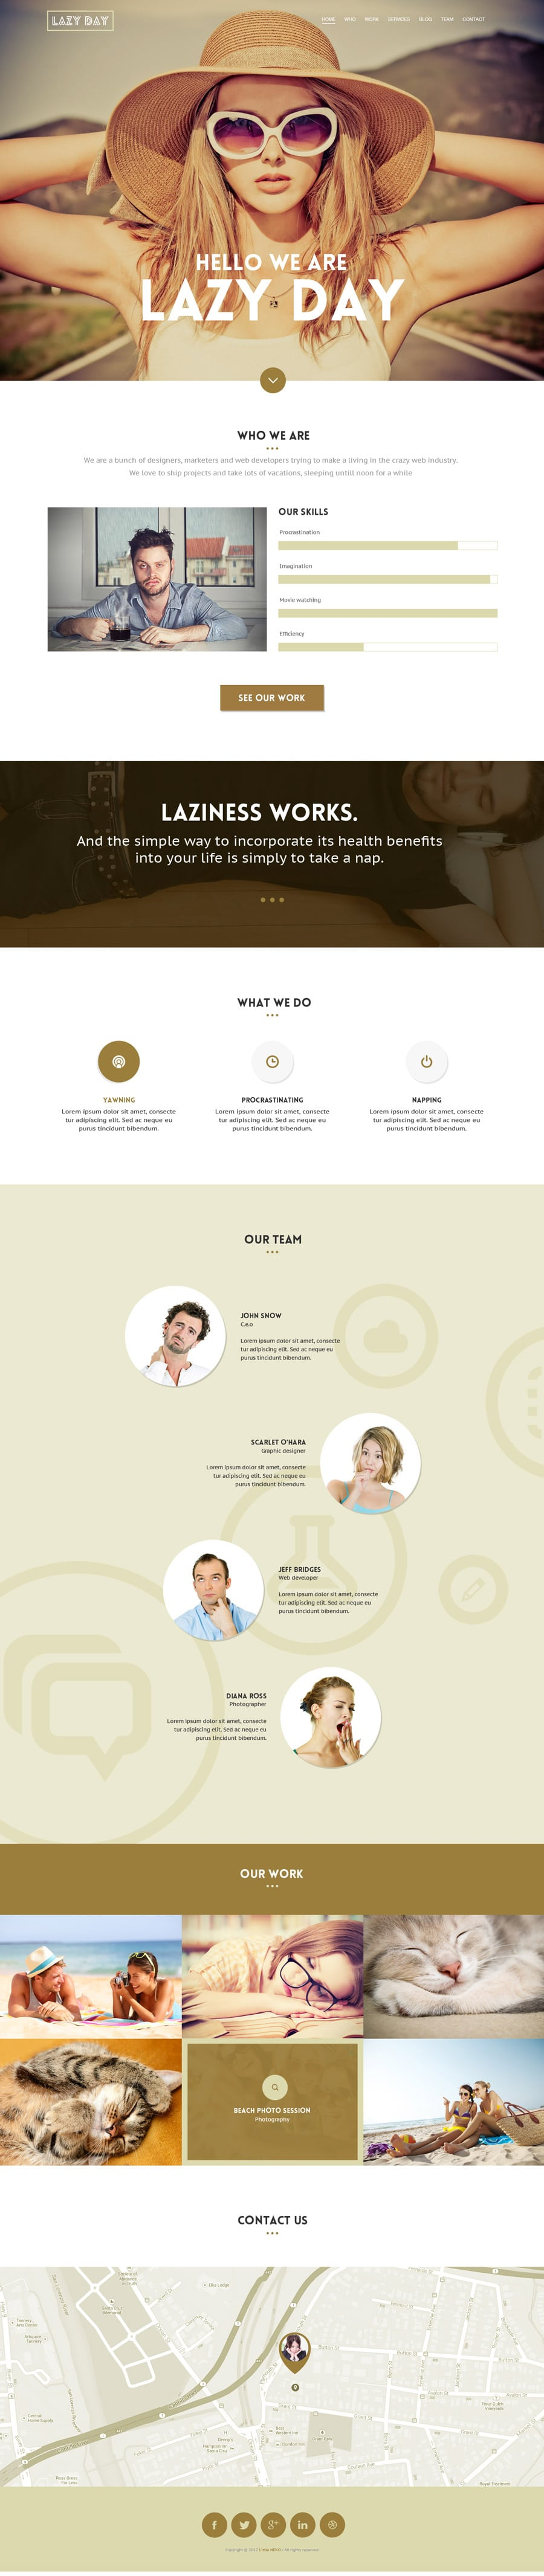 Lazy Day Free One page Web Template PSD